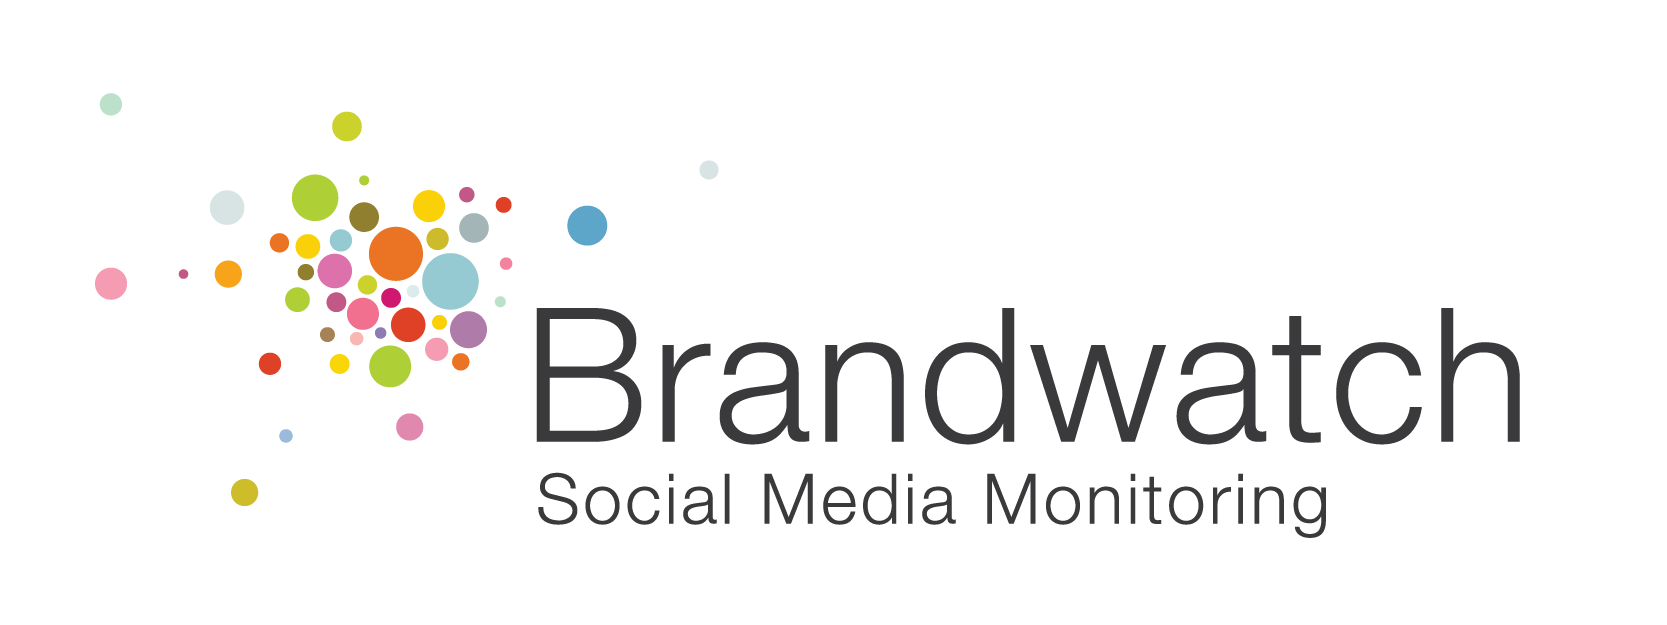 brandwatch_logo_lacommunication